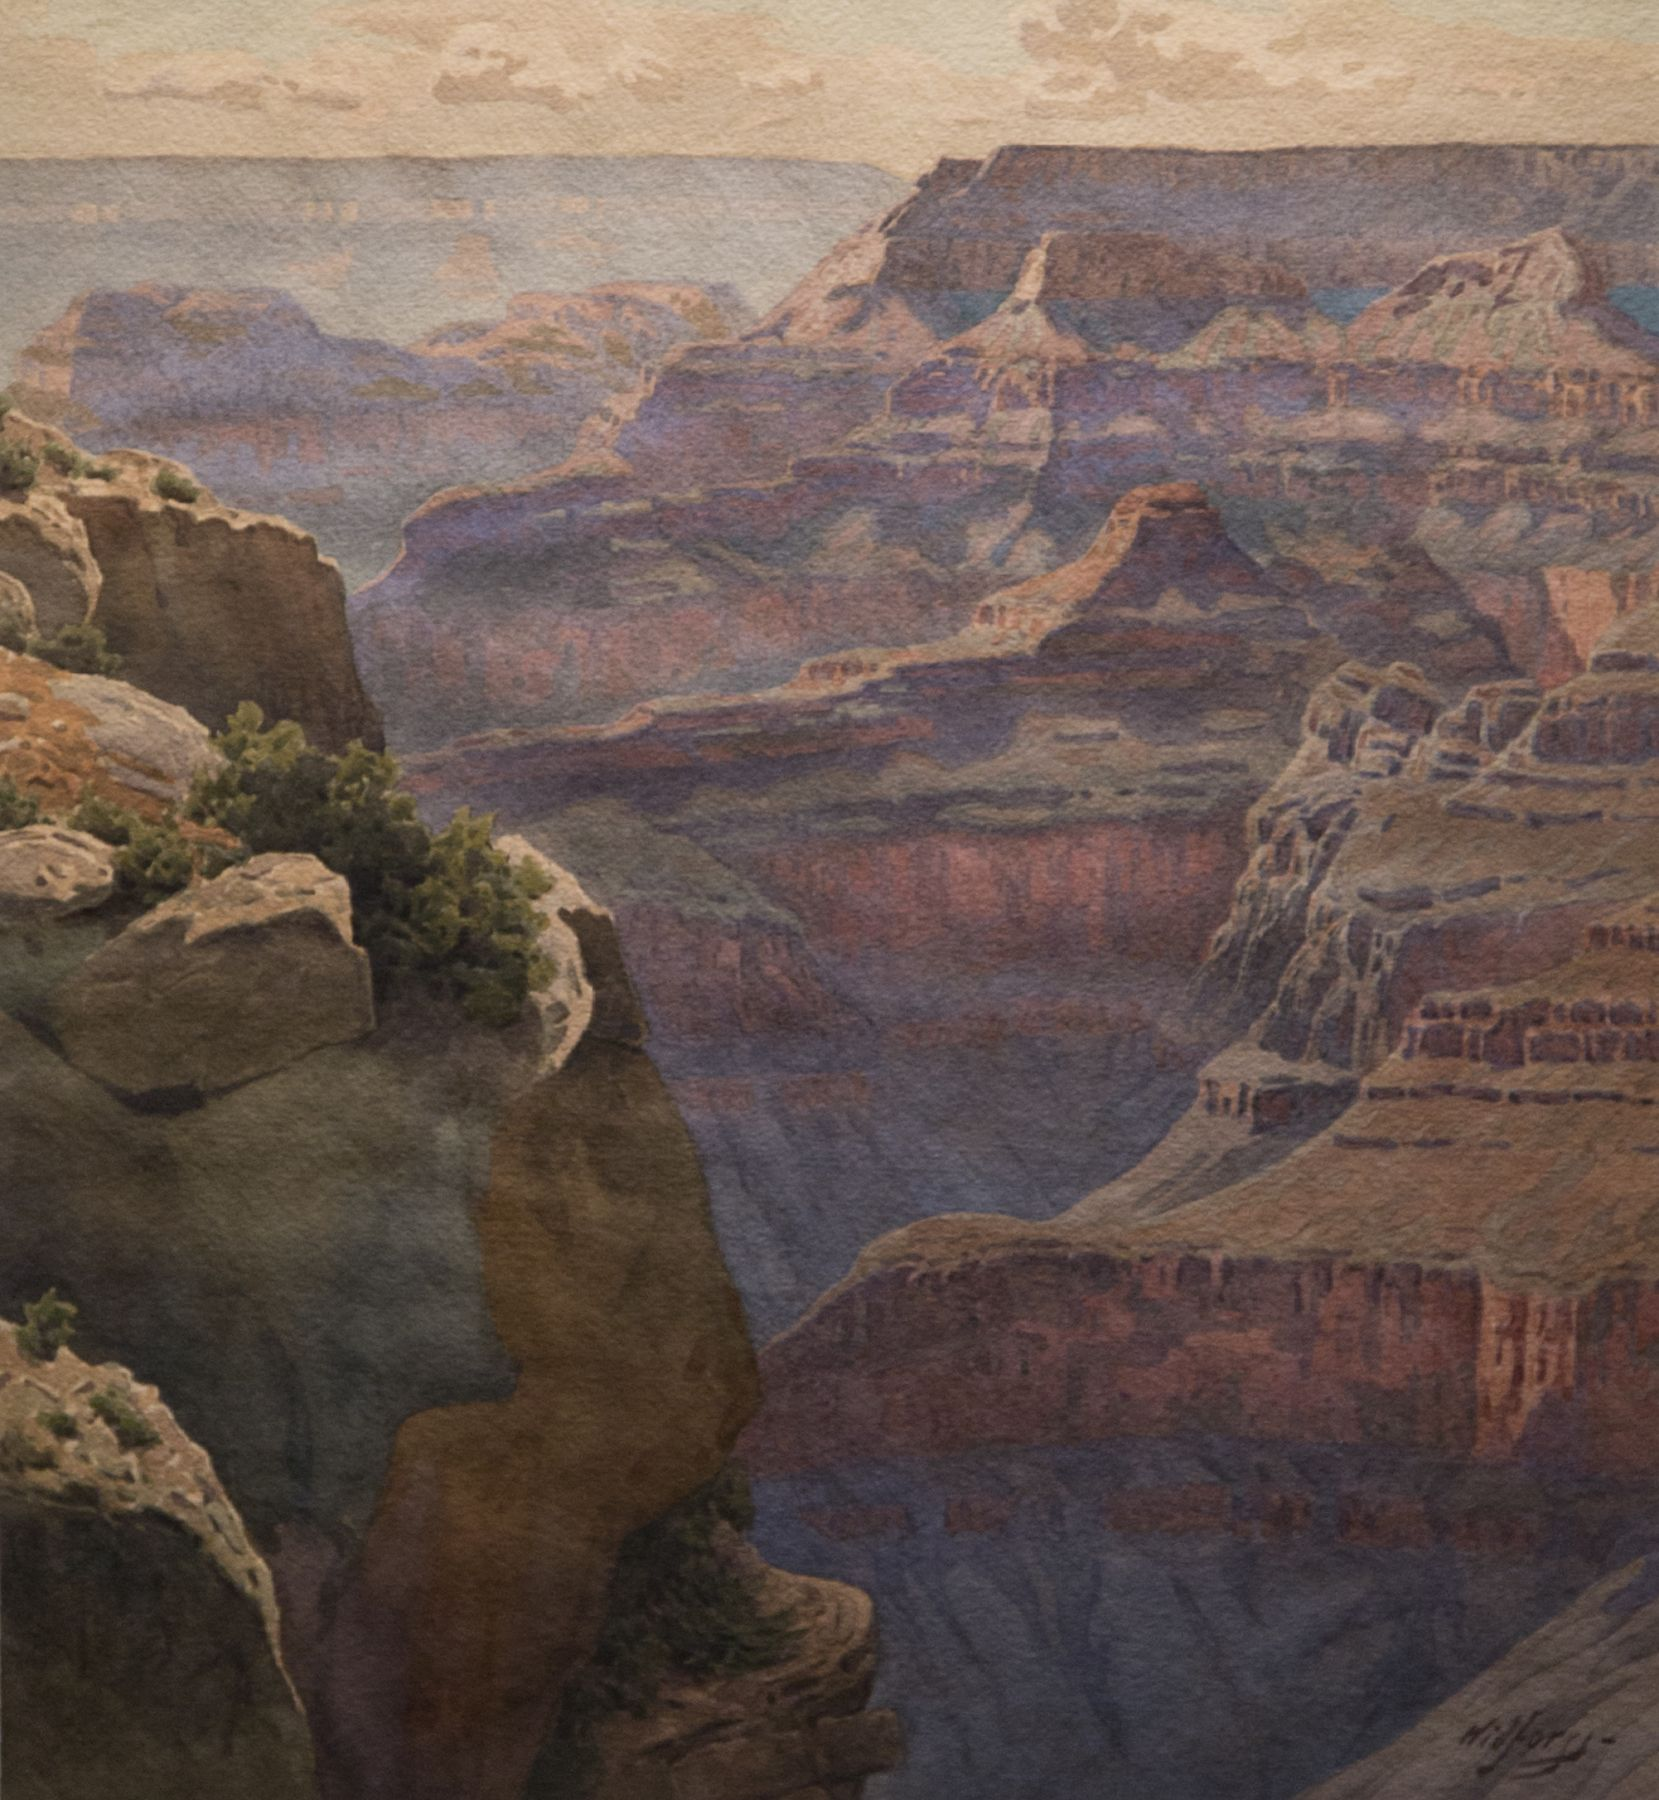 Gunnar Widforss, View of Hopi Point on the west rim of the Grand Canyon, Grand Canyon National Park, Western art, watercolor